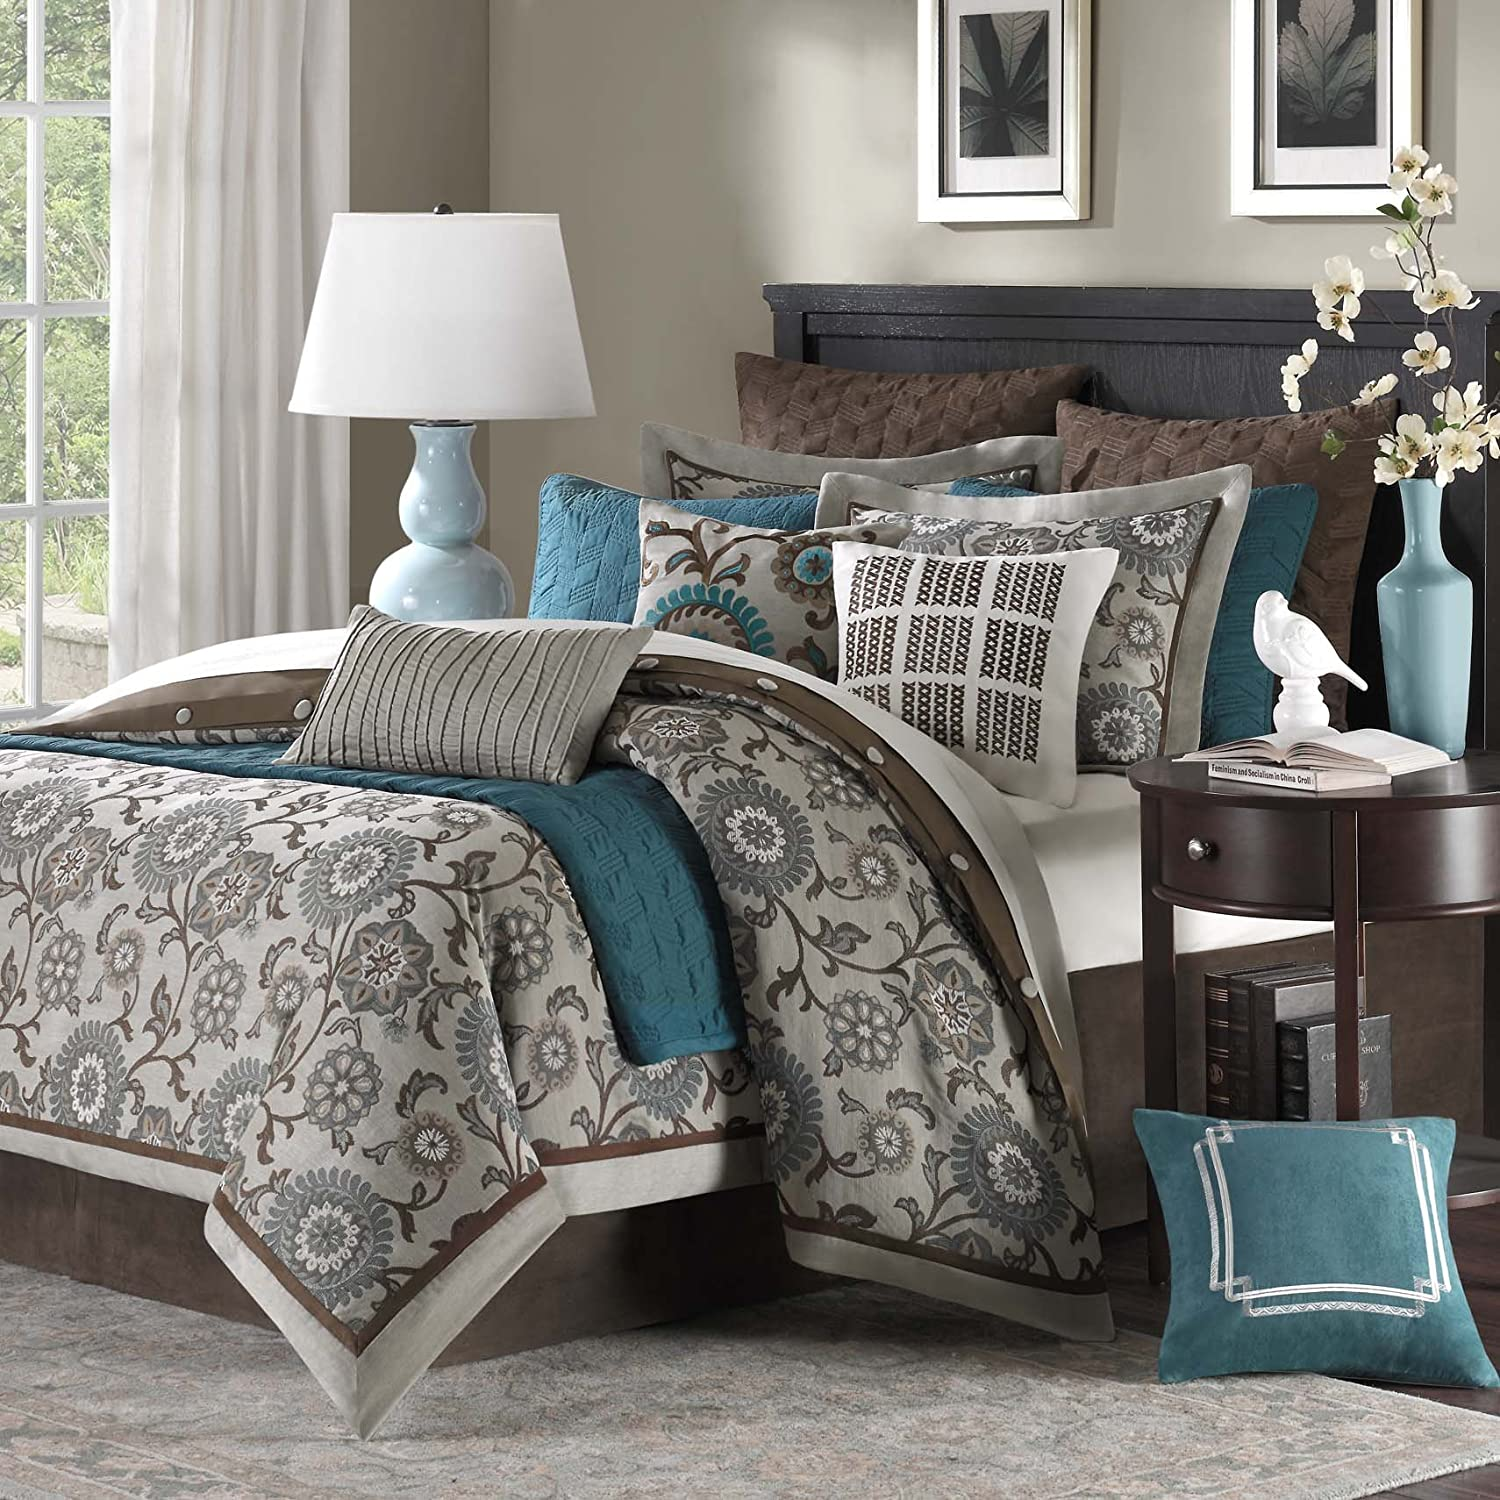 Teal and Brown Bedding and Comforter Sets